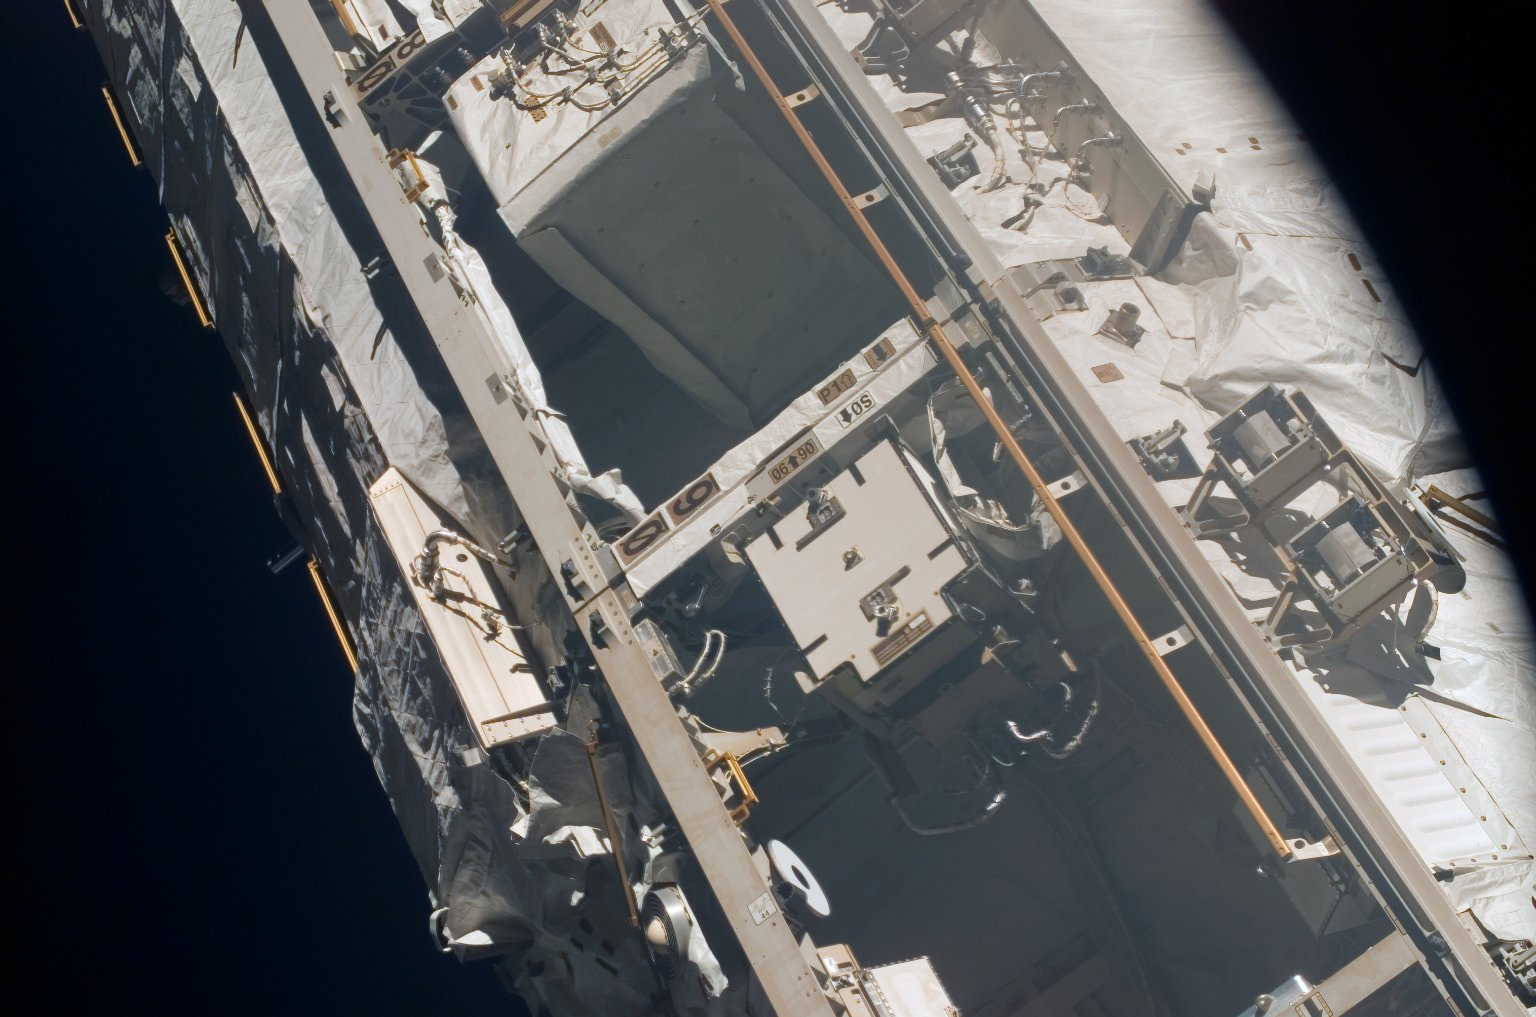 View of Bays 4 and 6 on the P1 Truss taken during an ISS survey on STS-121 / Expedition 13 joint operations